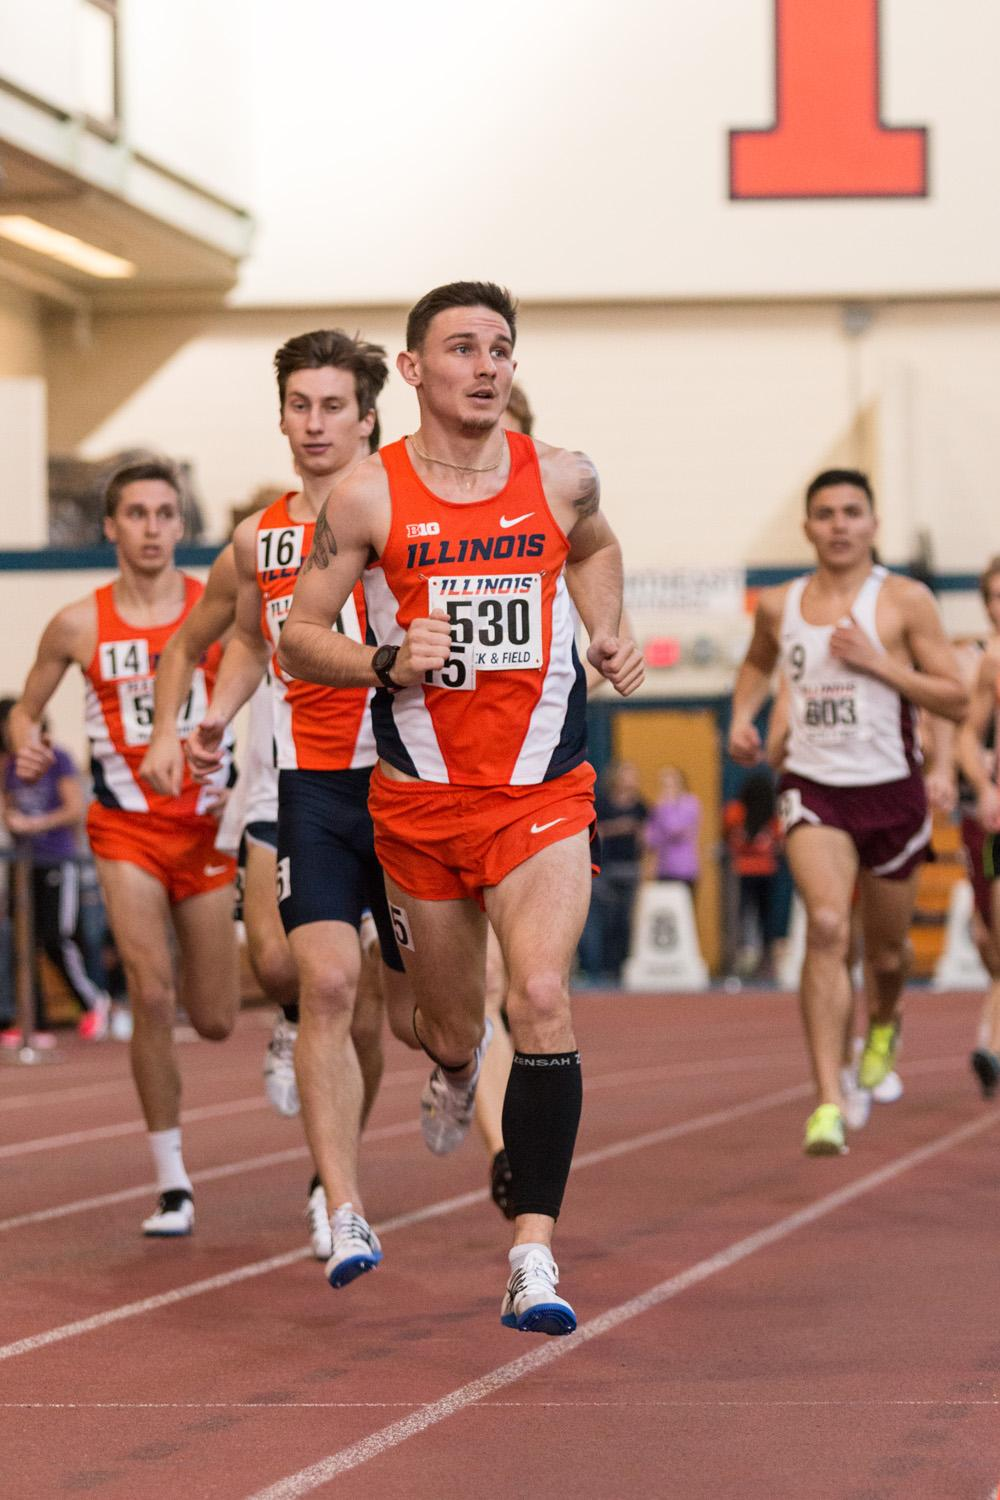 Illinois' Dylan Lafond competes in the 3000 meter run during the Orange and Blue meet on Saturday, February 20, 2016.